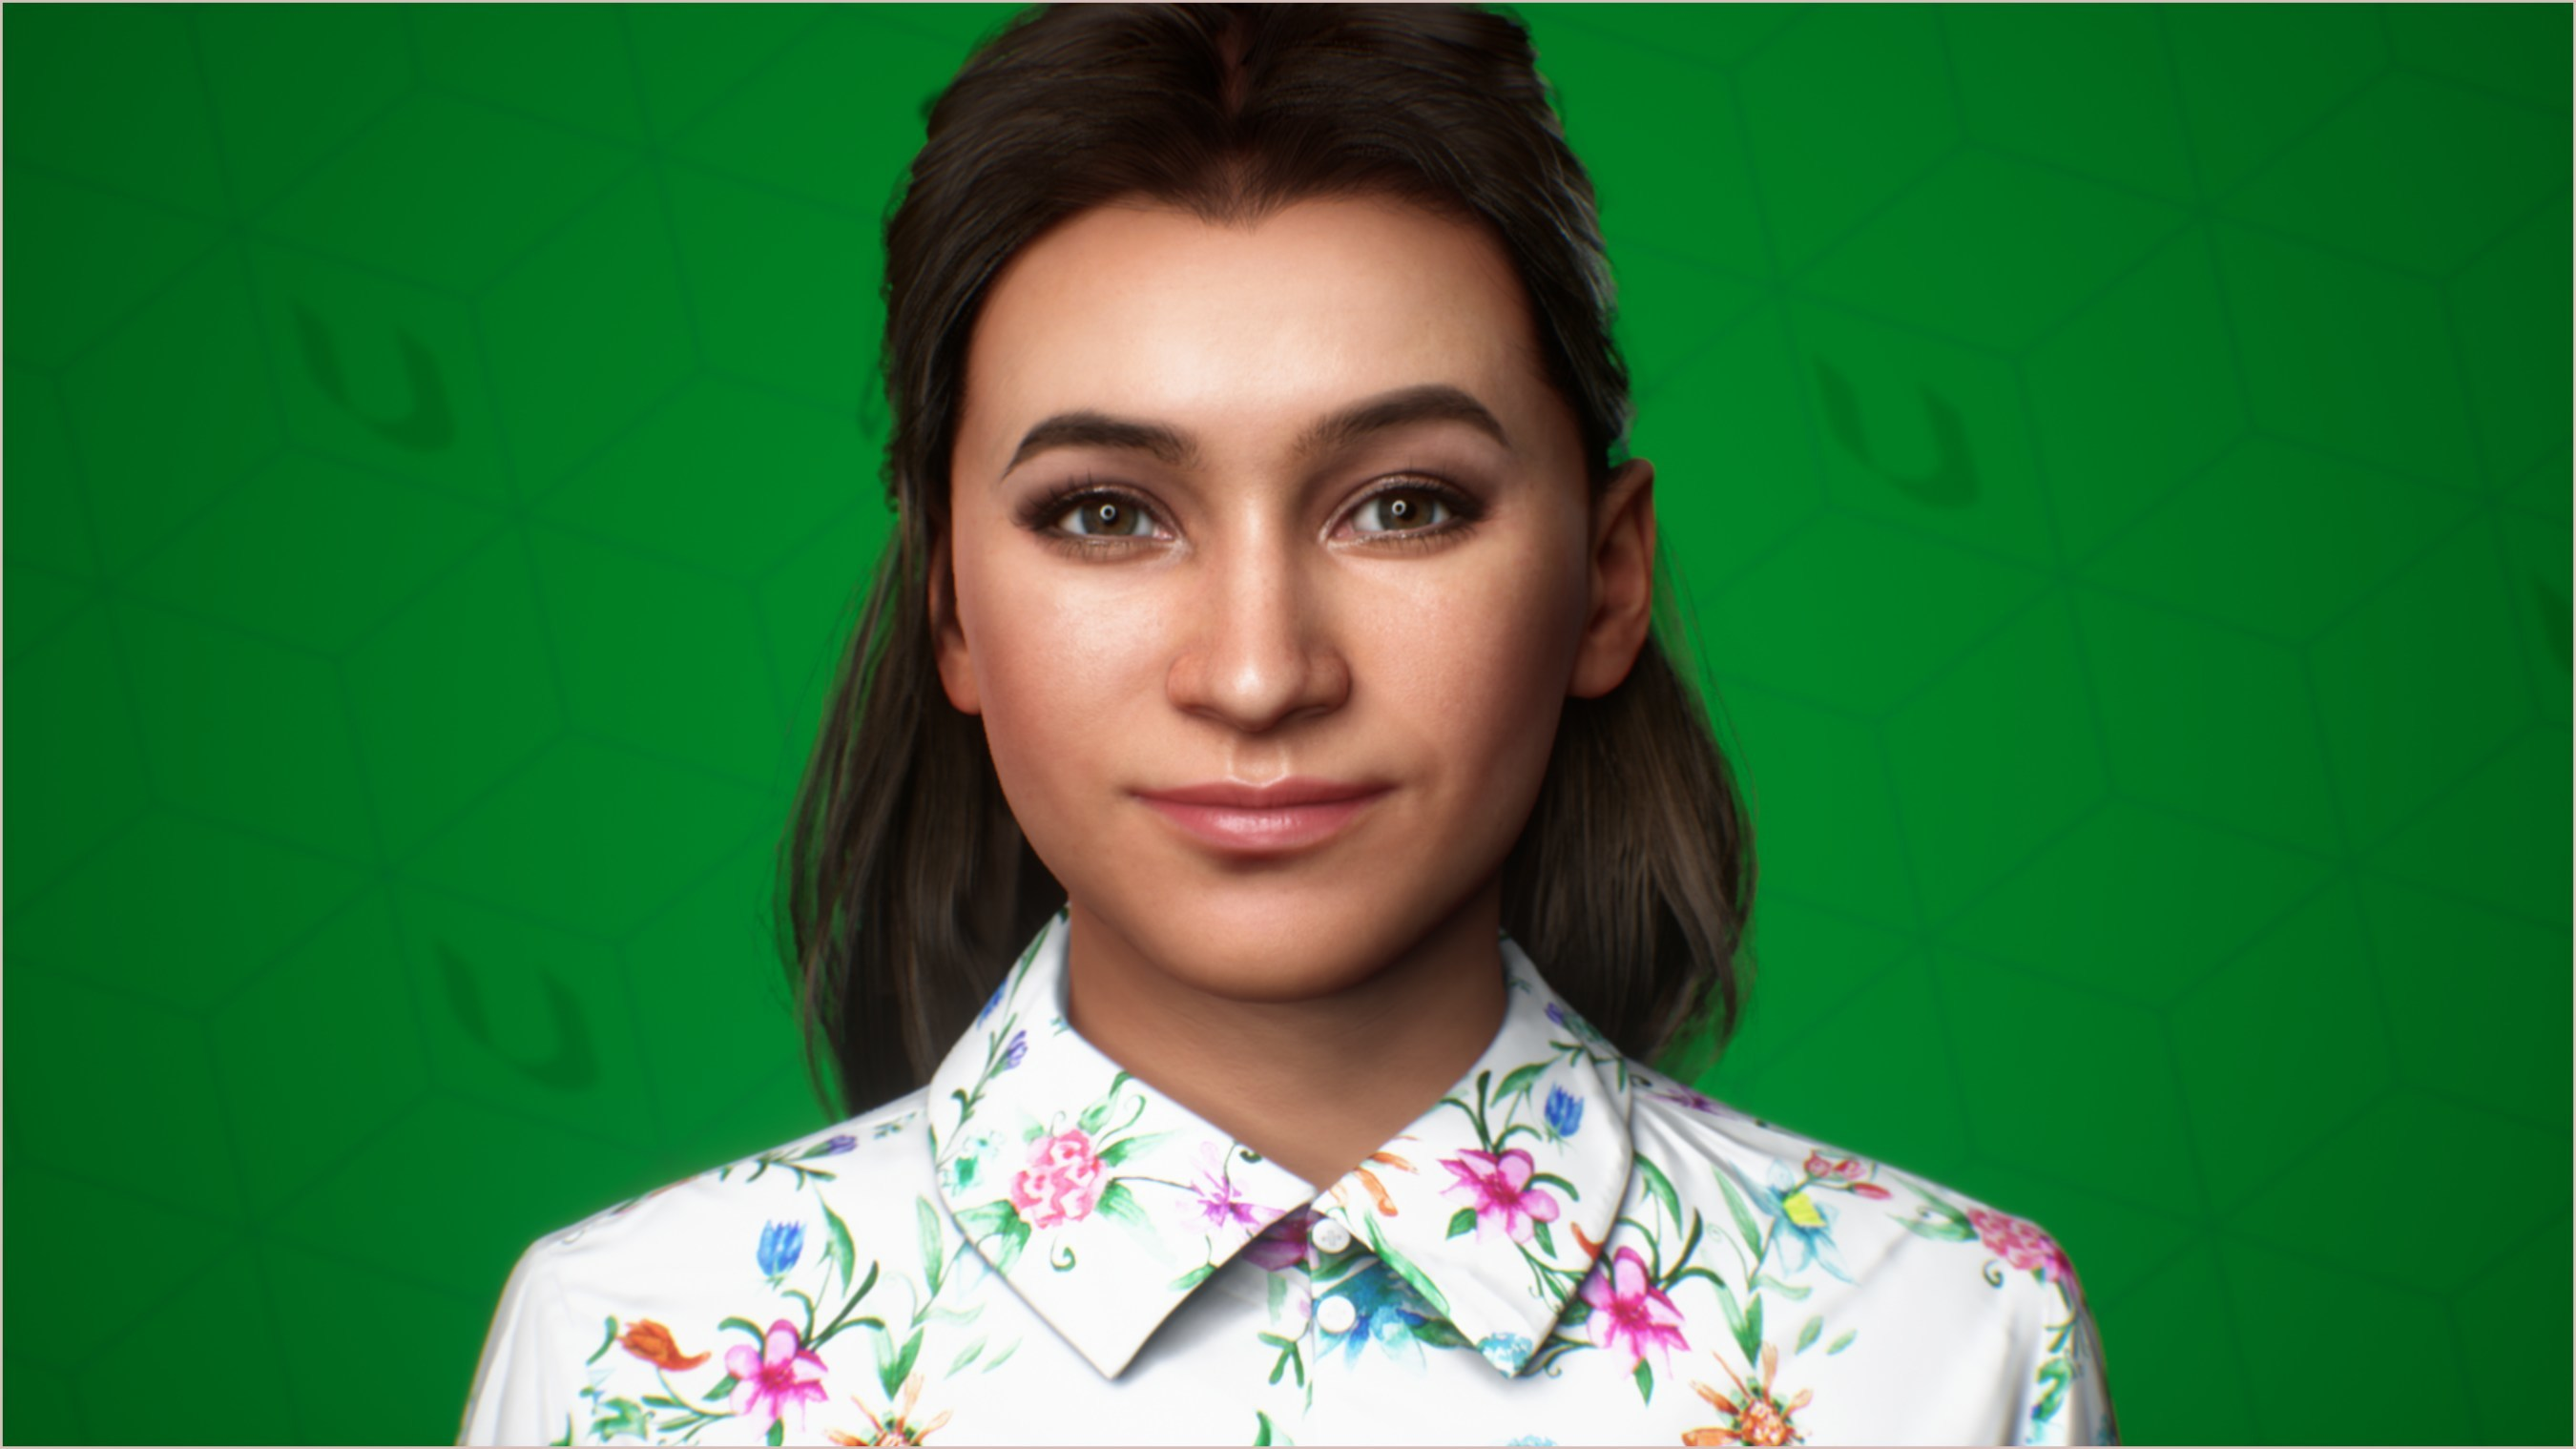 UBank's Mia, a FaceMe Digital Human